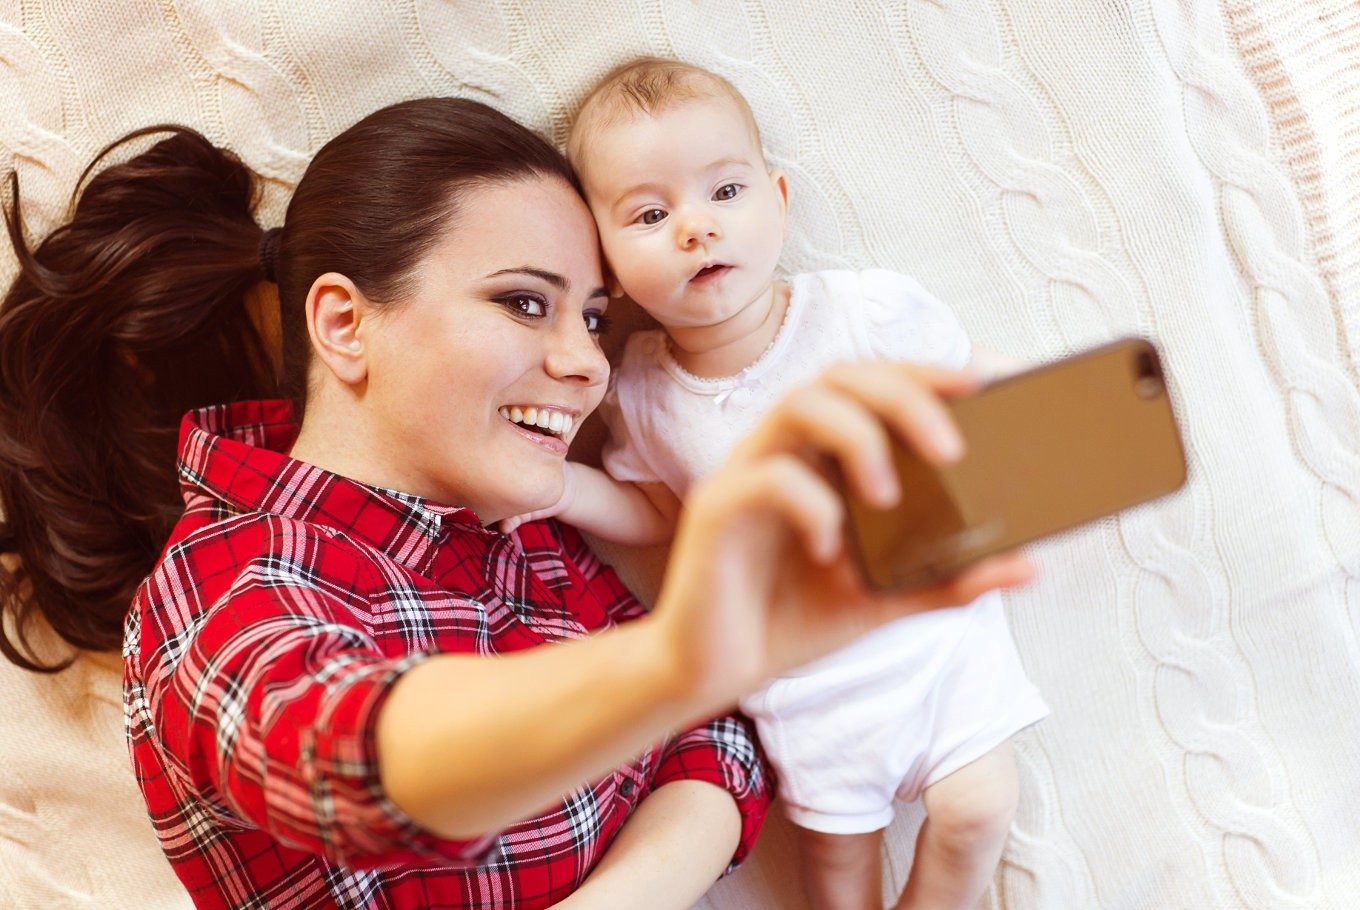 Oversharing isn't caring: Consider this before posting about your kids online